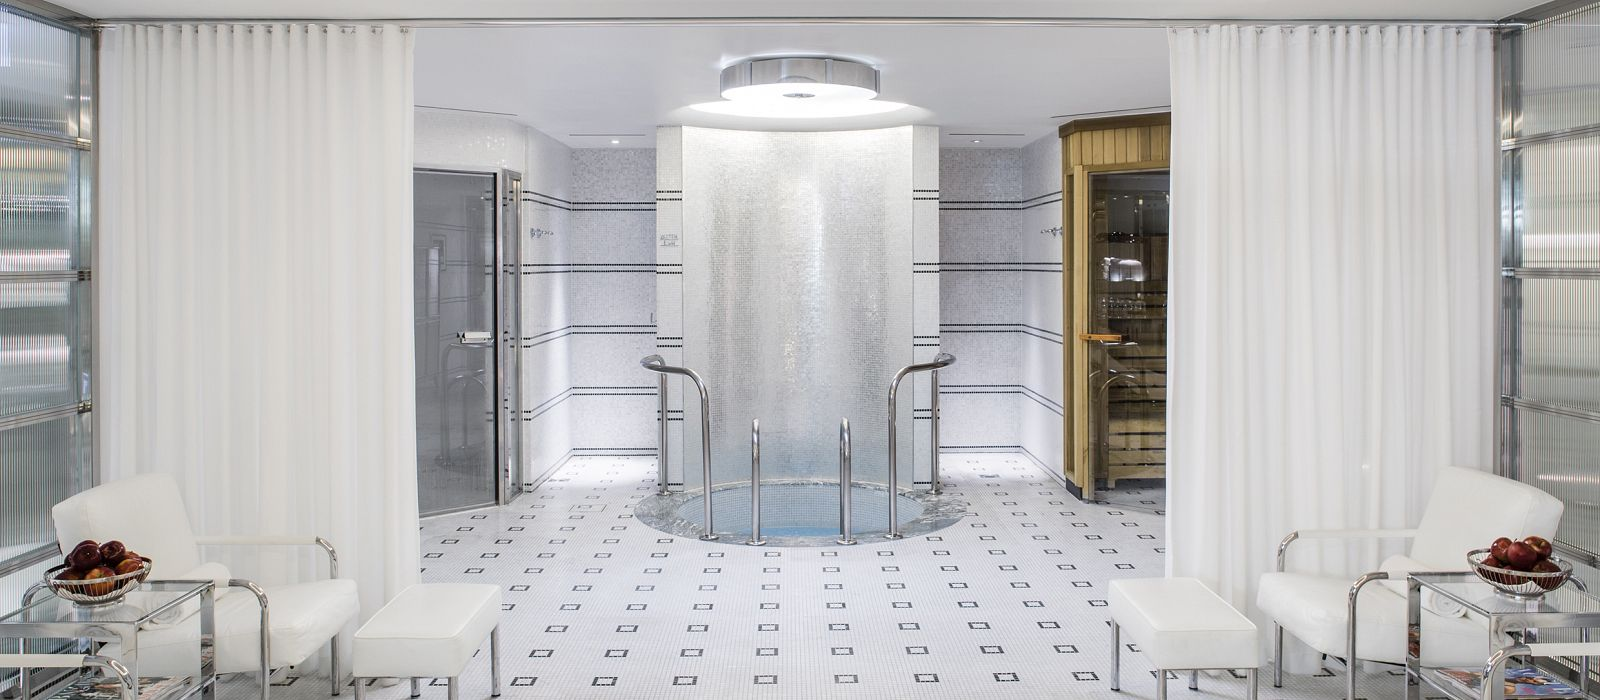 The Beaumont Hotel spa